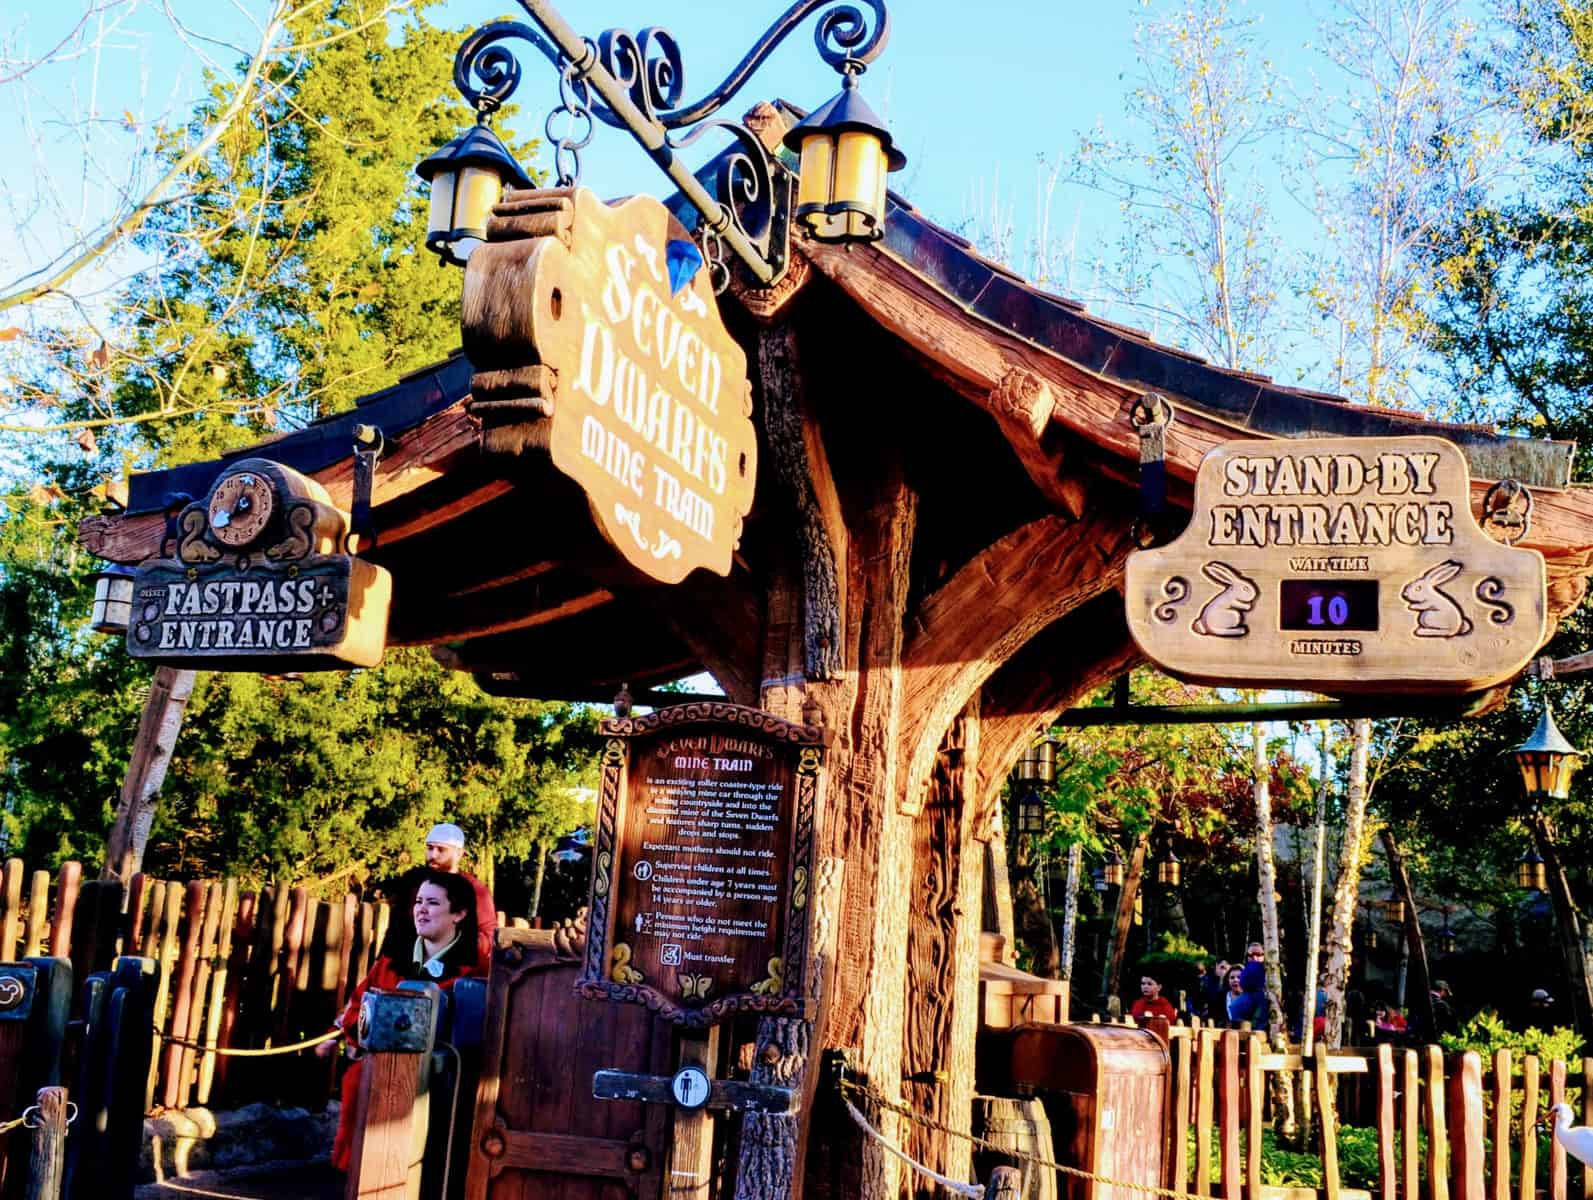 How to get difficult FastPass reservations